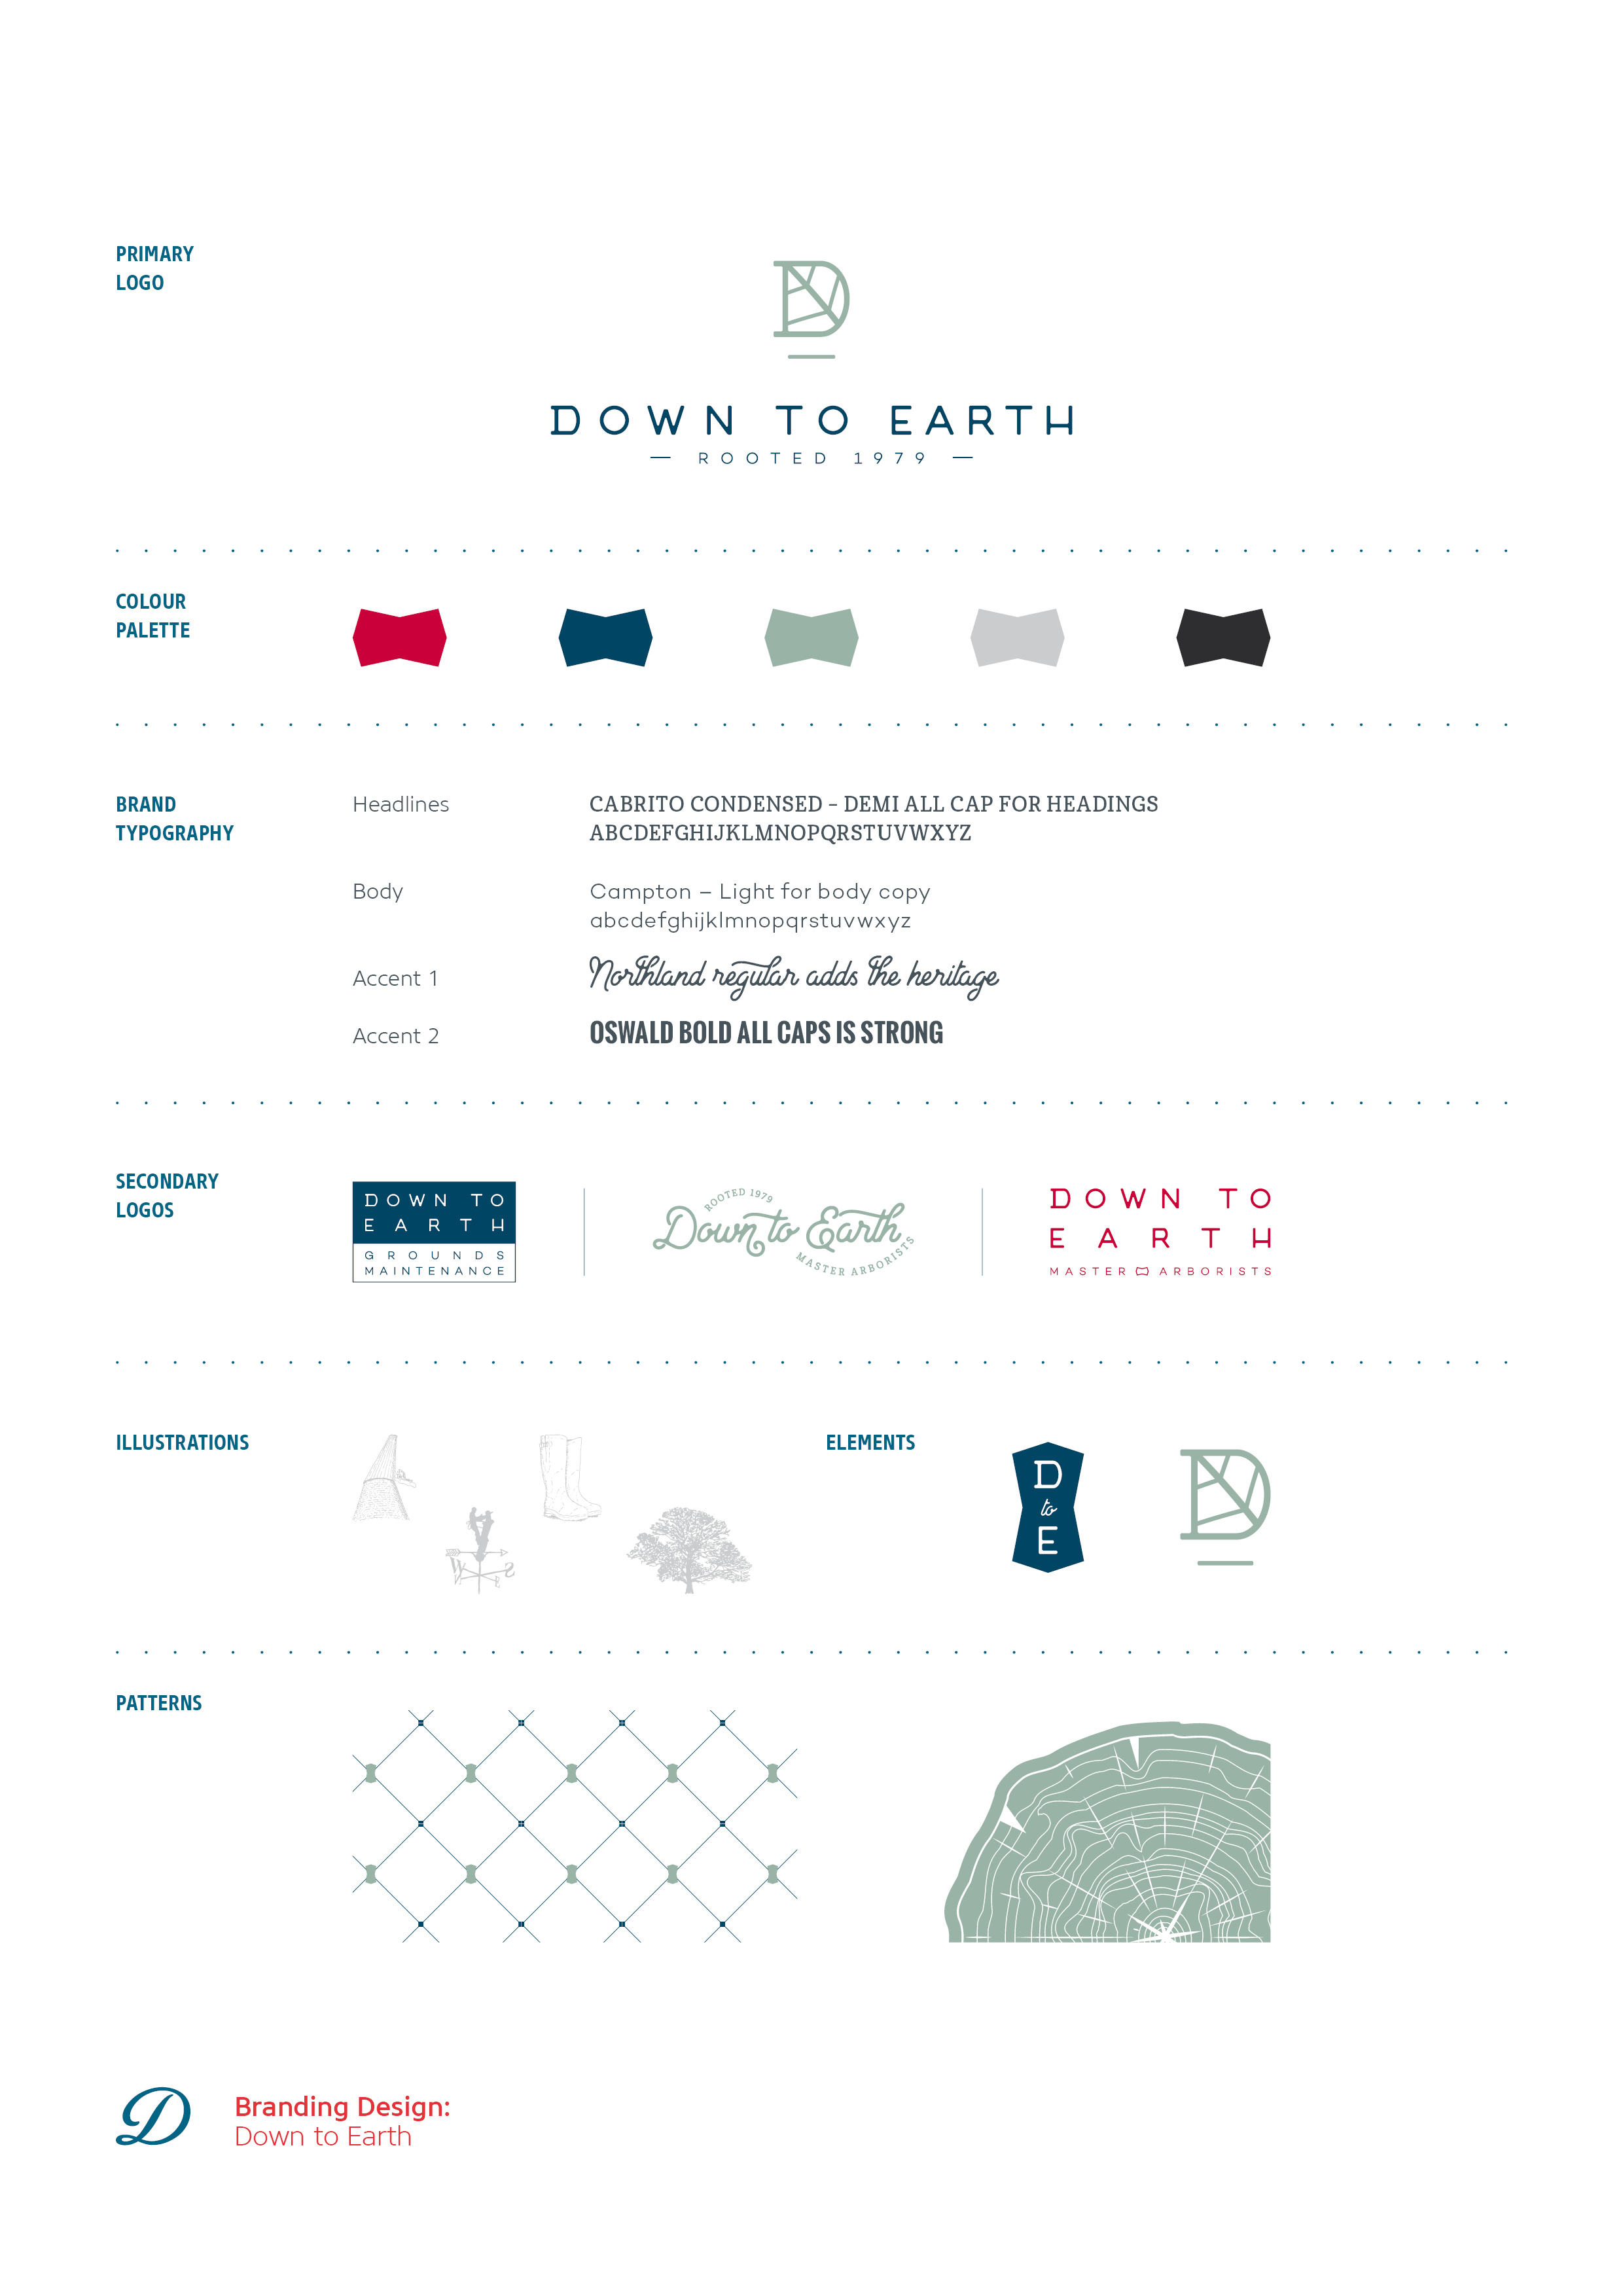 Down to Earth, tree surgery Kent, logo design, branding and brand identity by Ditto Creative, branding agency Kent